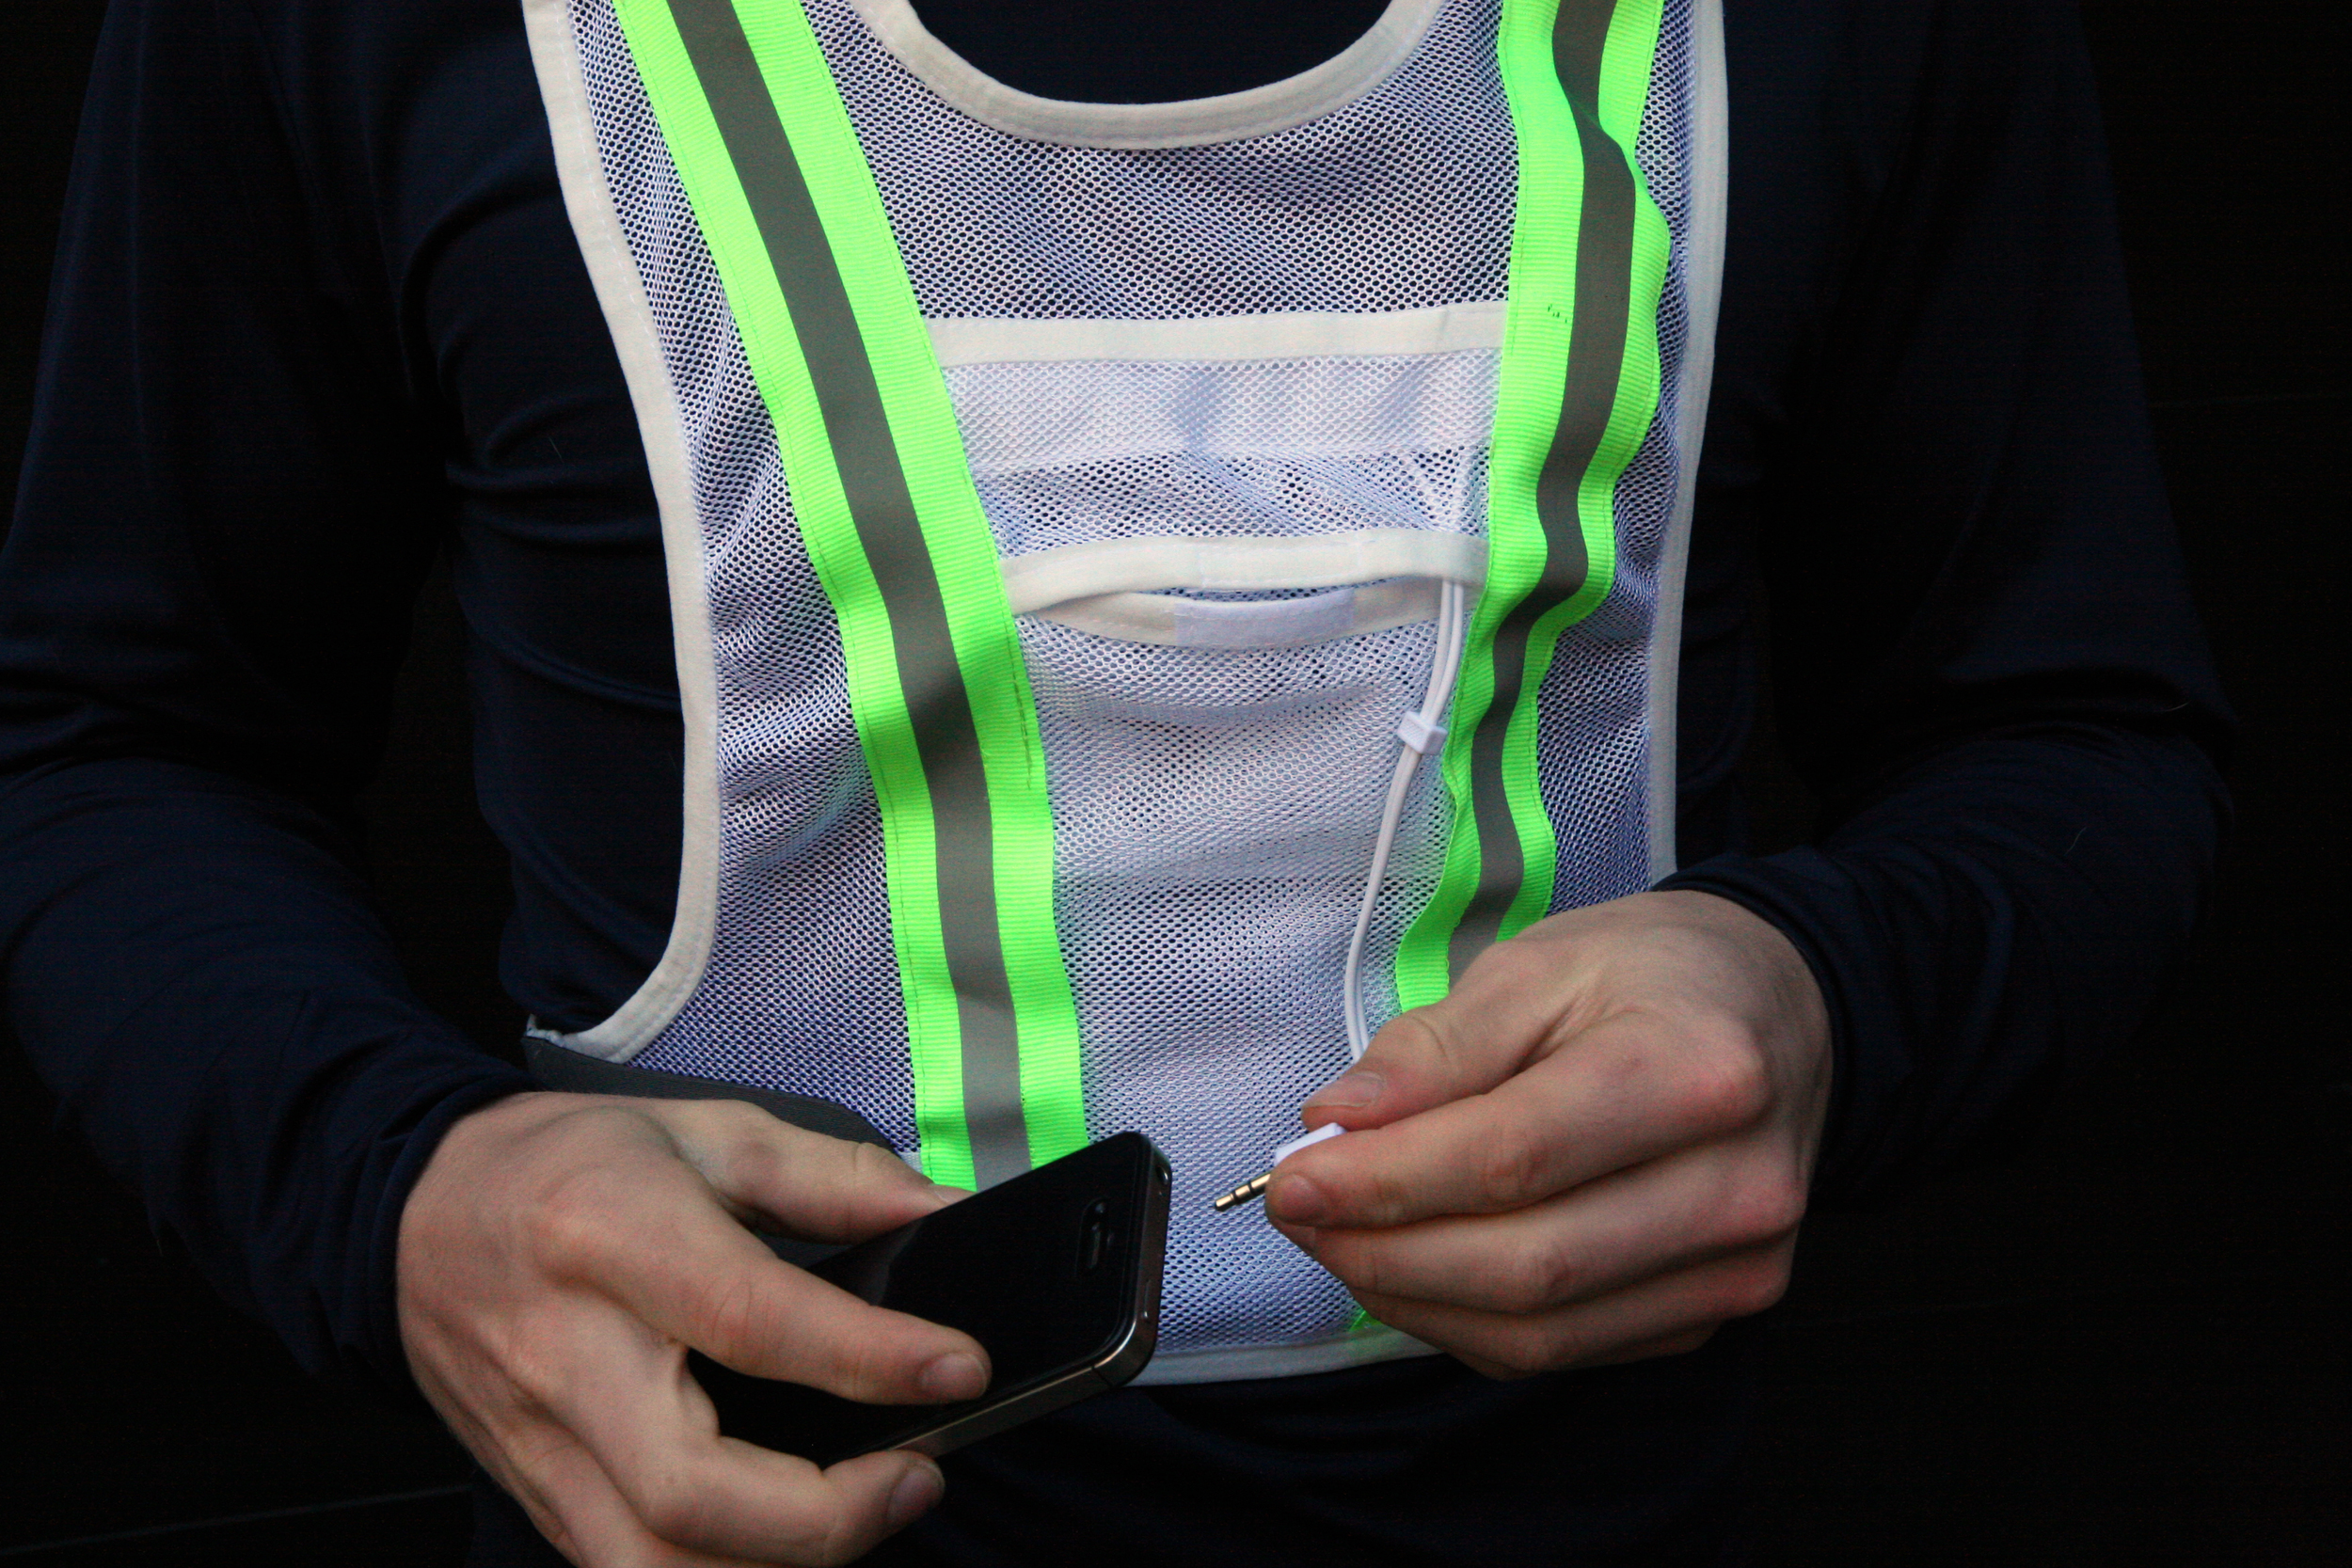 • Larger devices such as smart phone will fit in the pocket between the reflective strips. Use the smaller inside pocket for keys, gels, cards, etc.